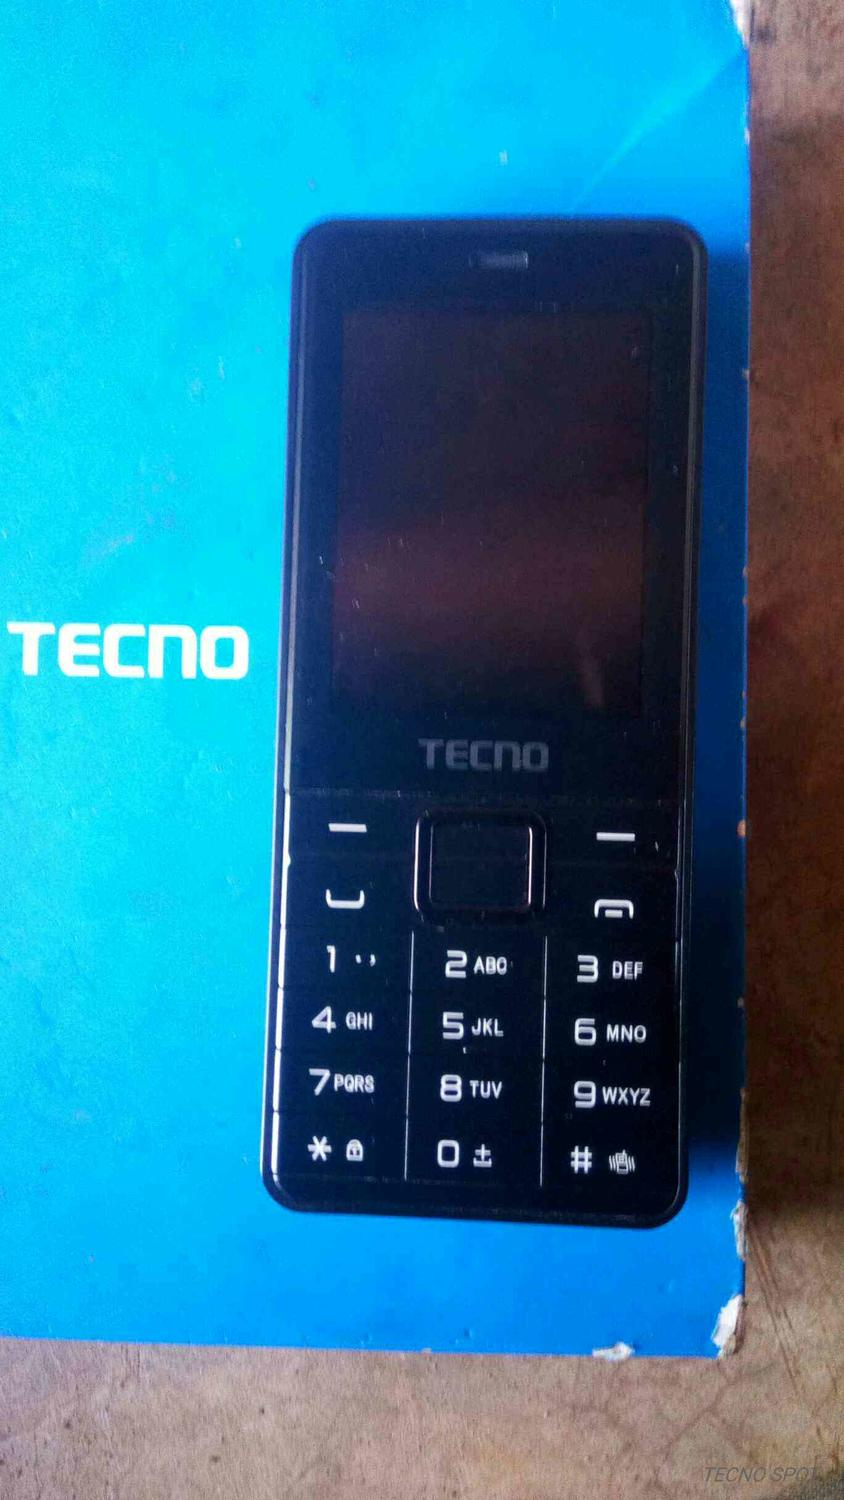 tecno t401 flashlight notification - TECNO MOBILE COMMUNITY